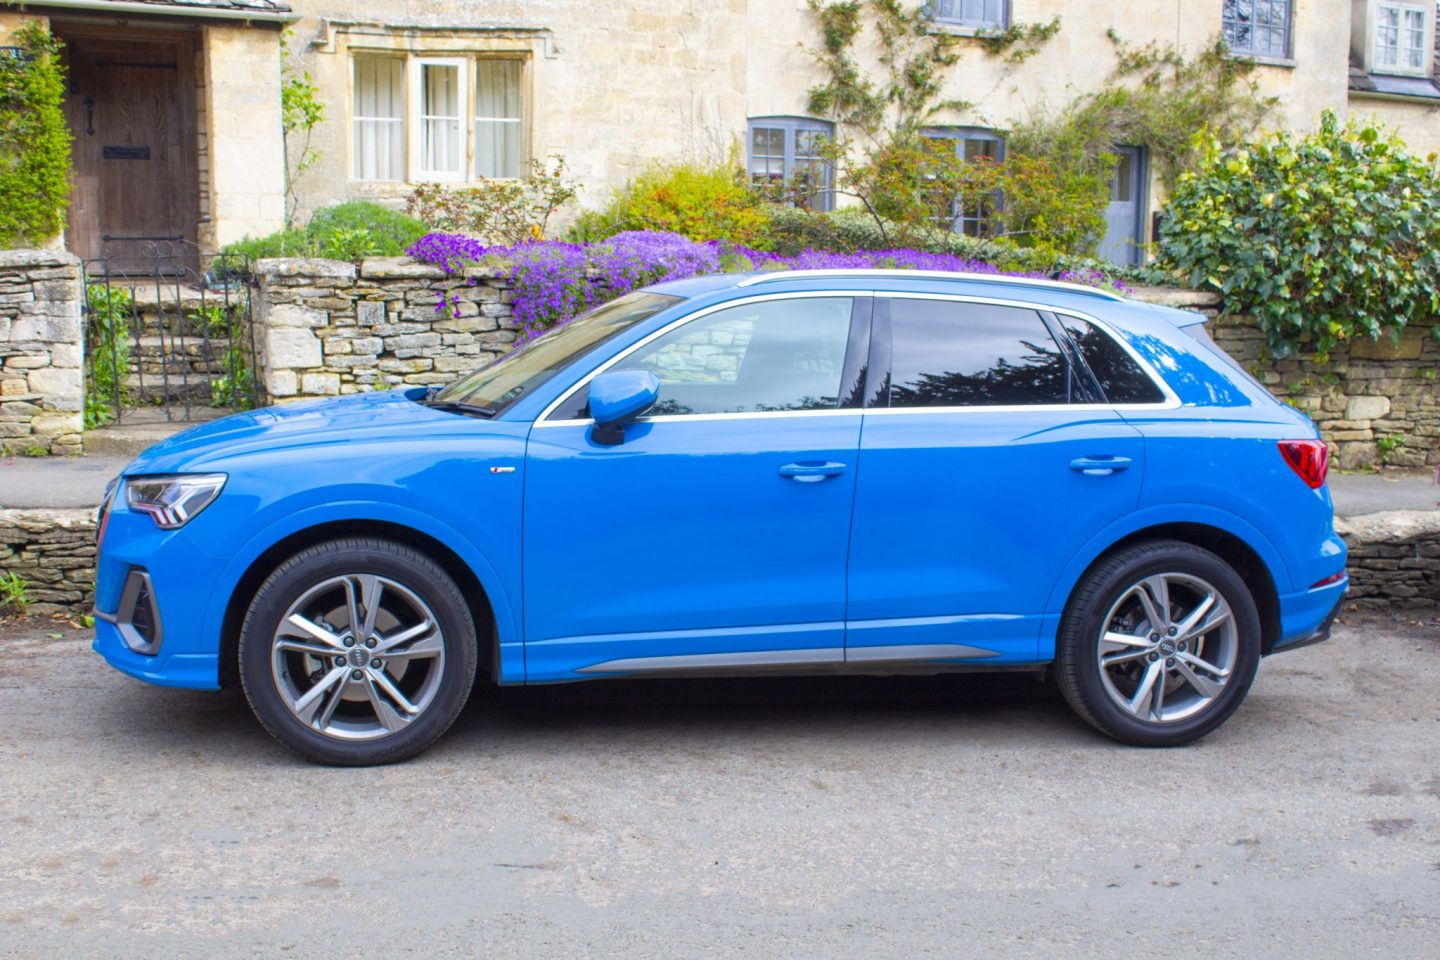 The new Audi Q3: Still a school run favourite? - Dad Blog UK